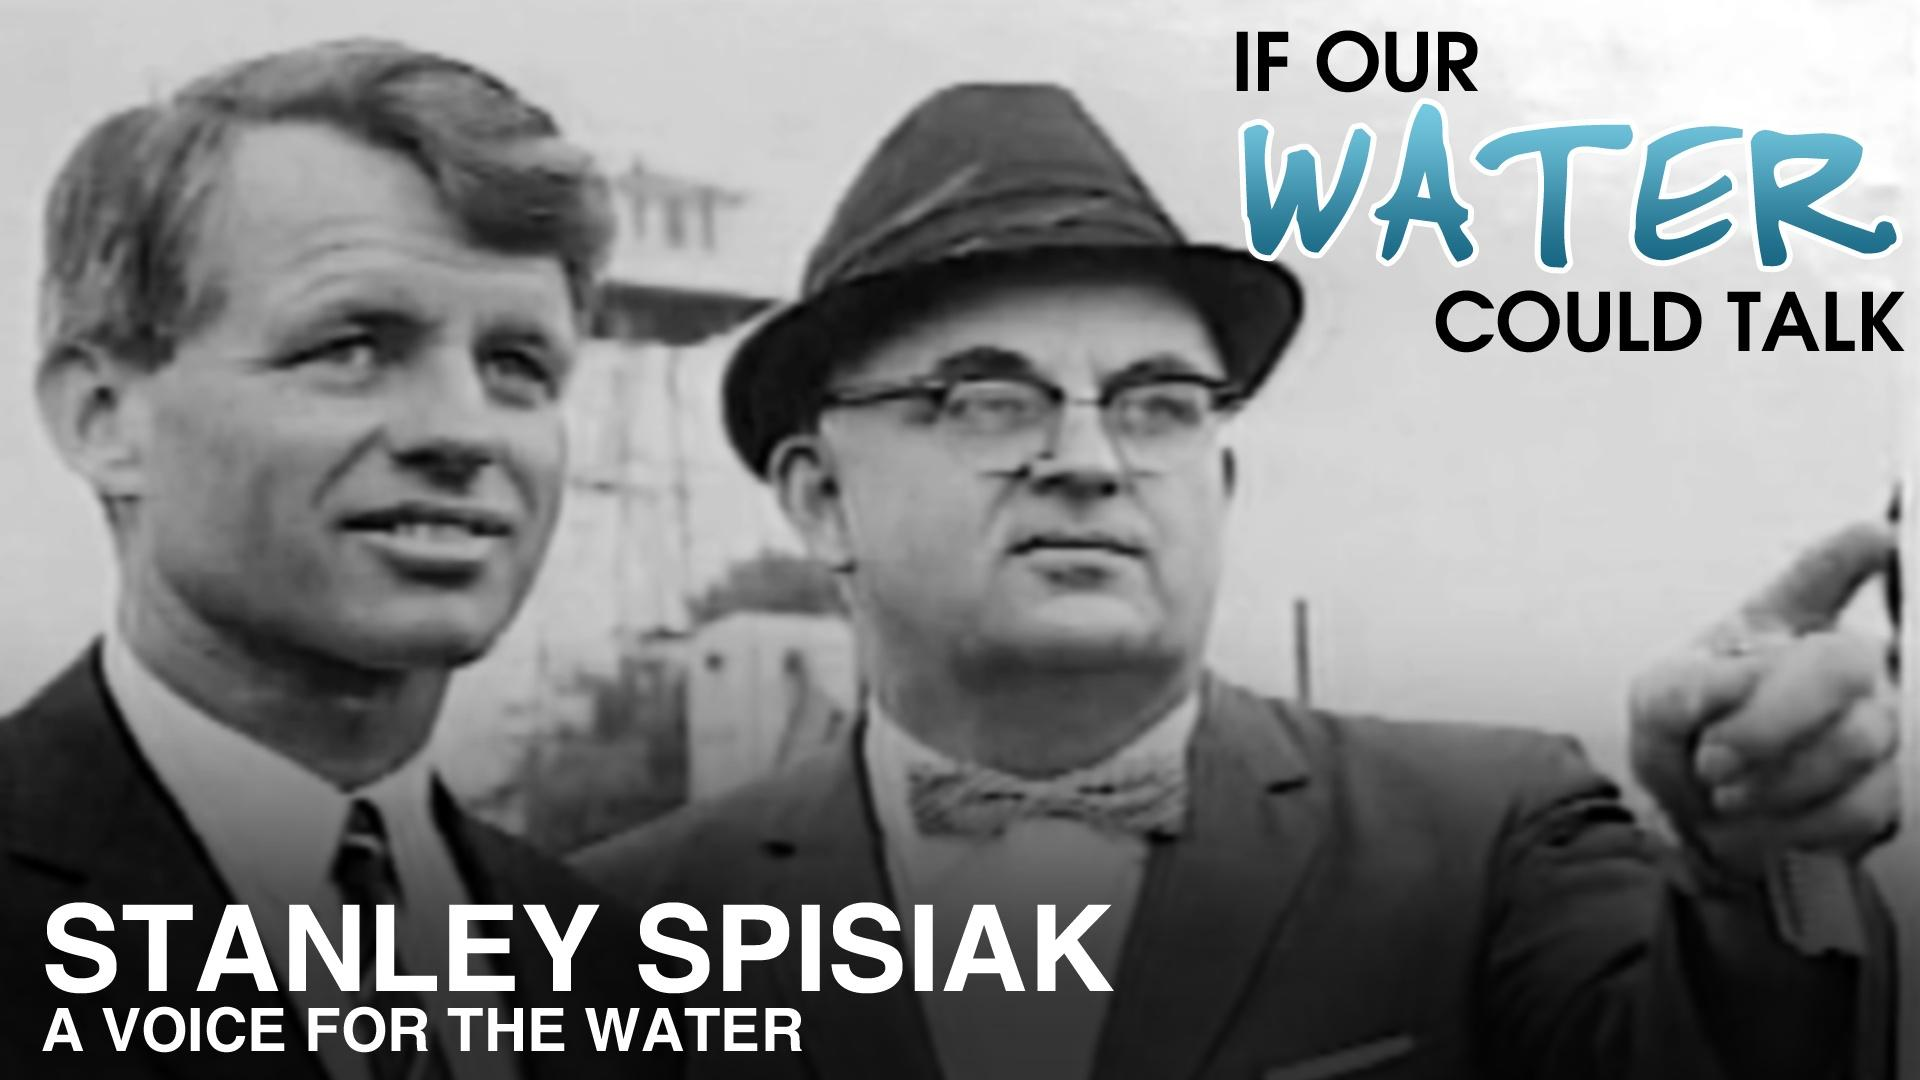 Stanley Spisiak: A Voice for the Water